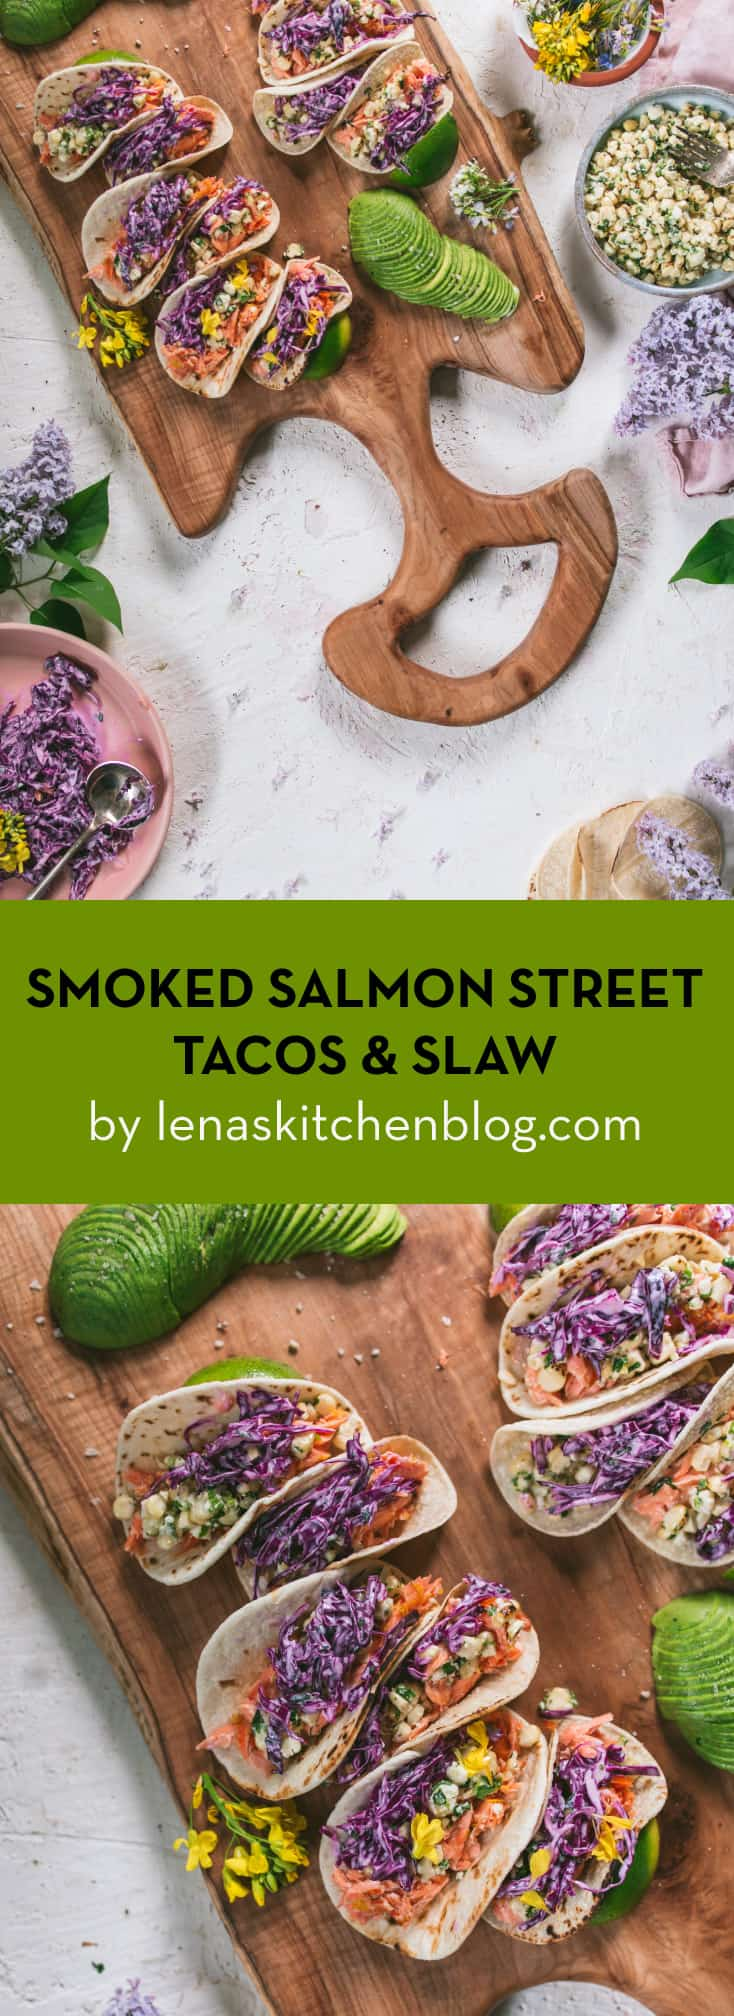 Smoked Salmon Street Tacos with Purple Cabbage slaw by LENASKITCHENBLOG.COM